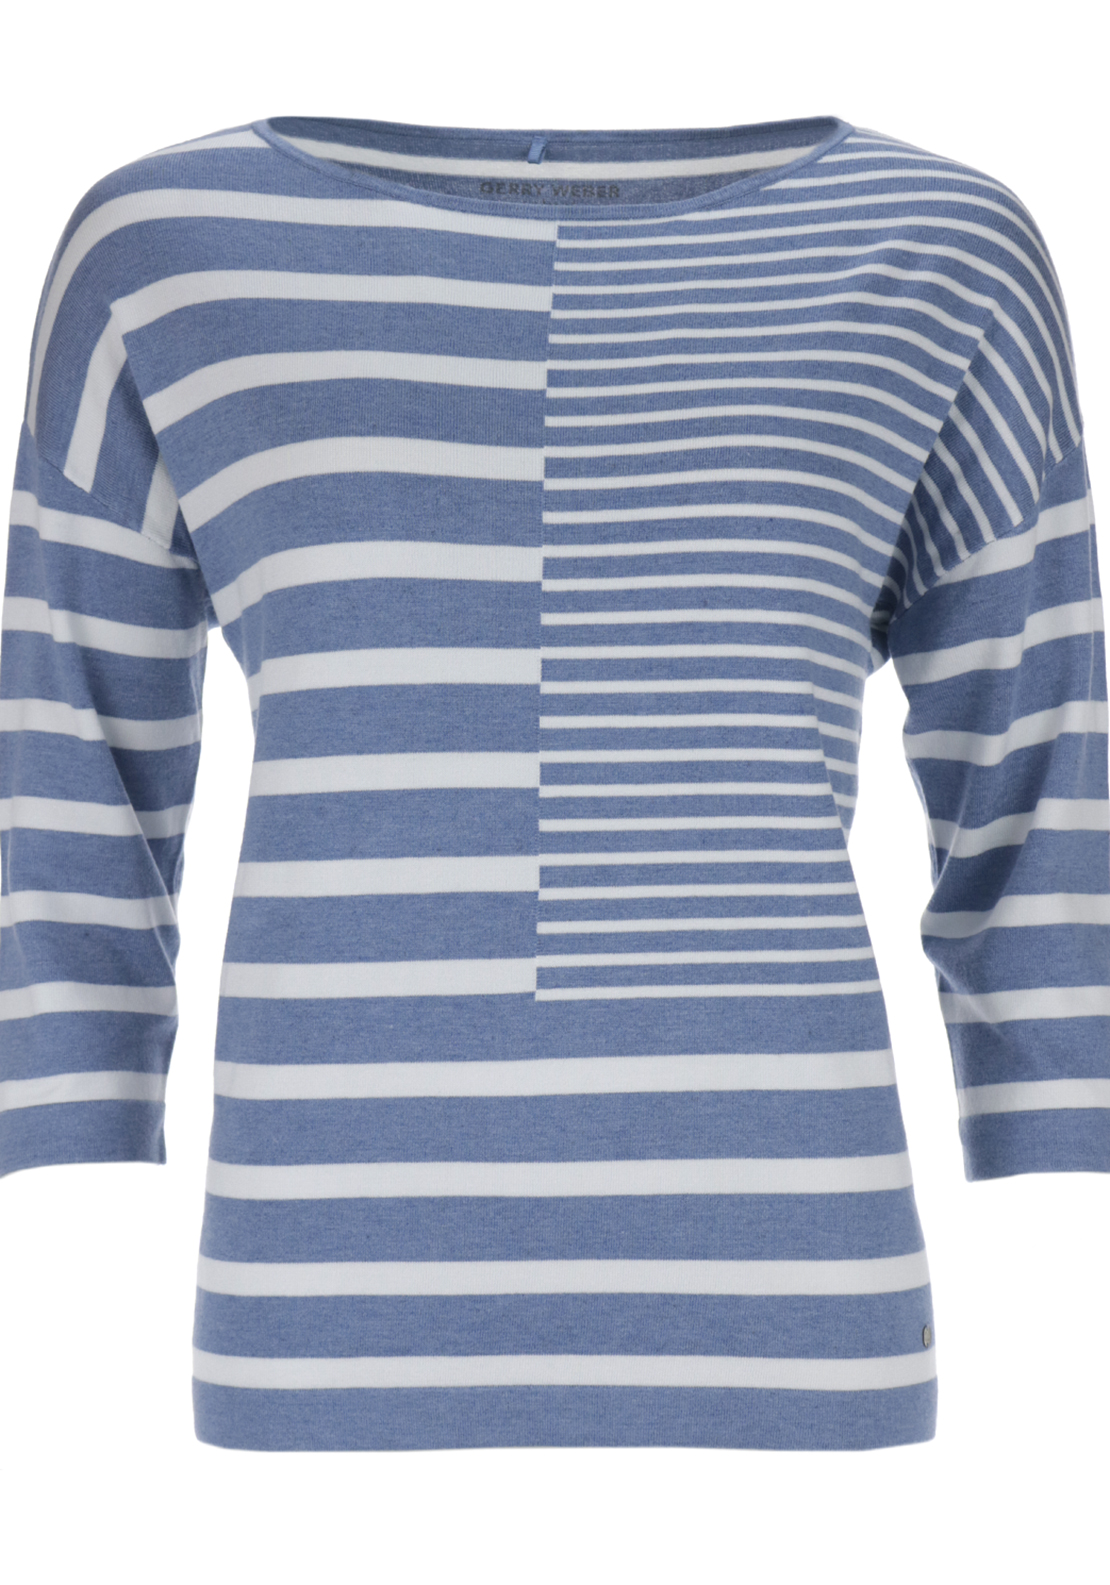 Gerry Weber Knitwear Jumper with Panelled Stripes, Blue and White